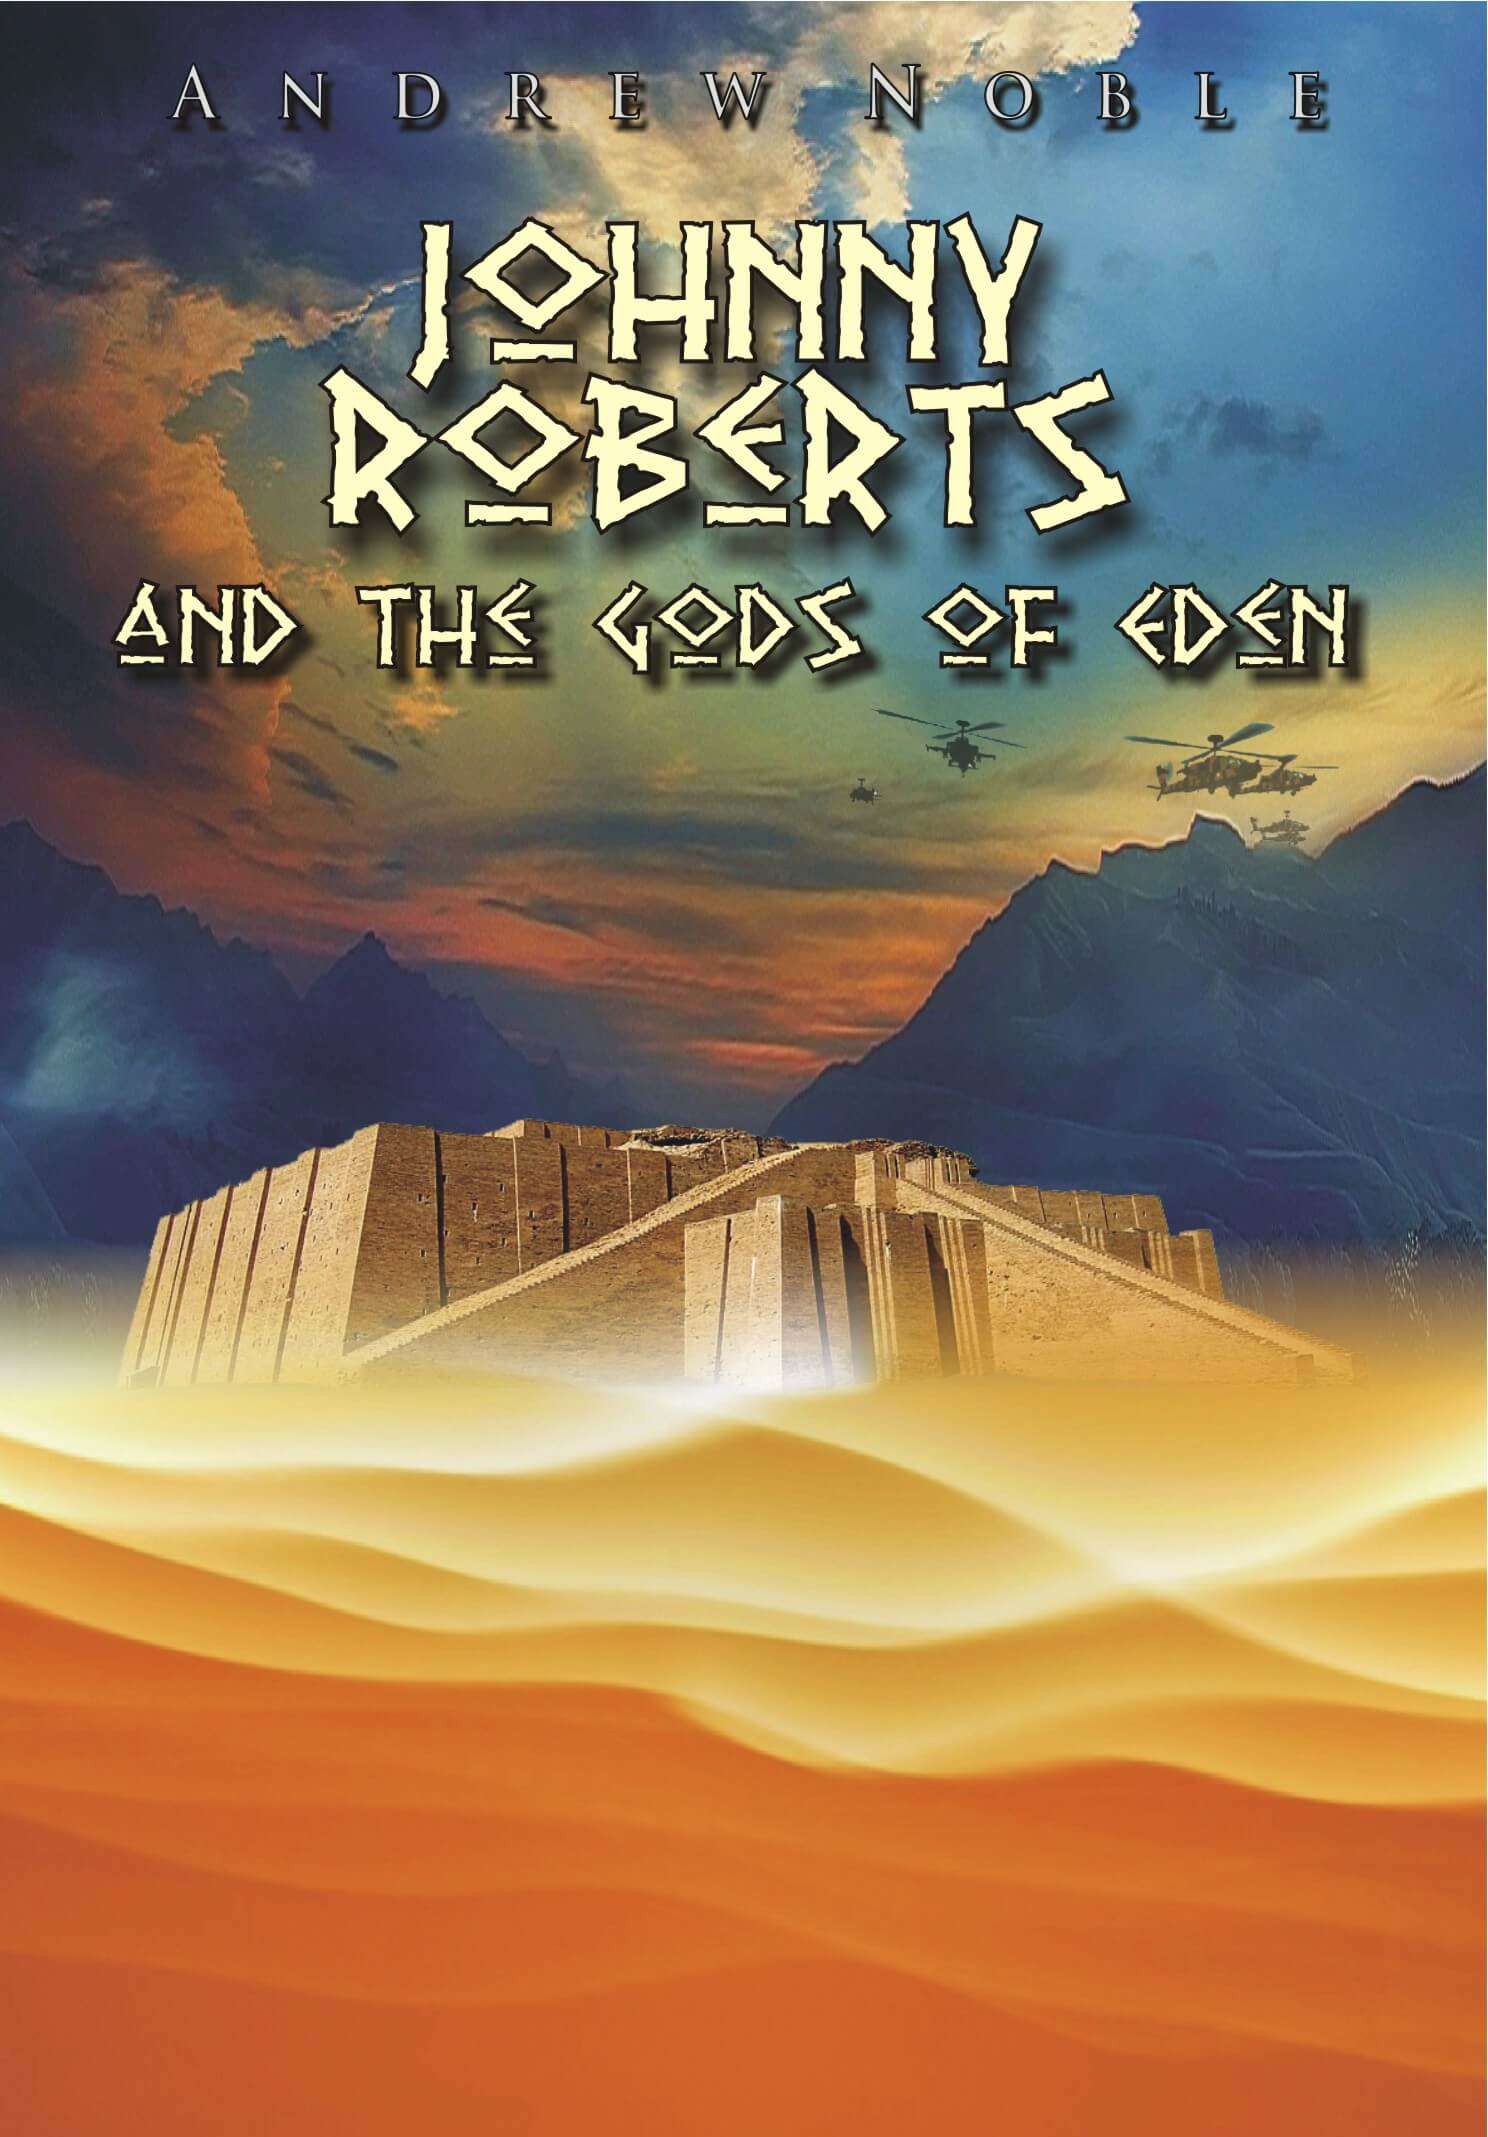 johnny roberts and the gods of eden andrew noble book cover